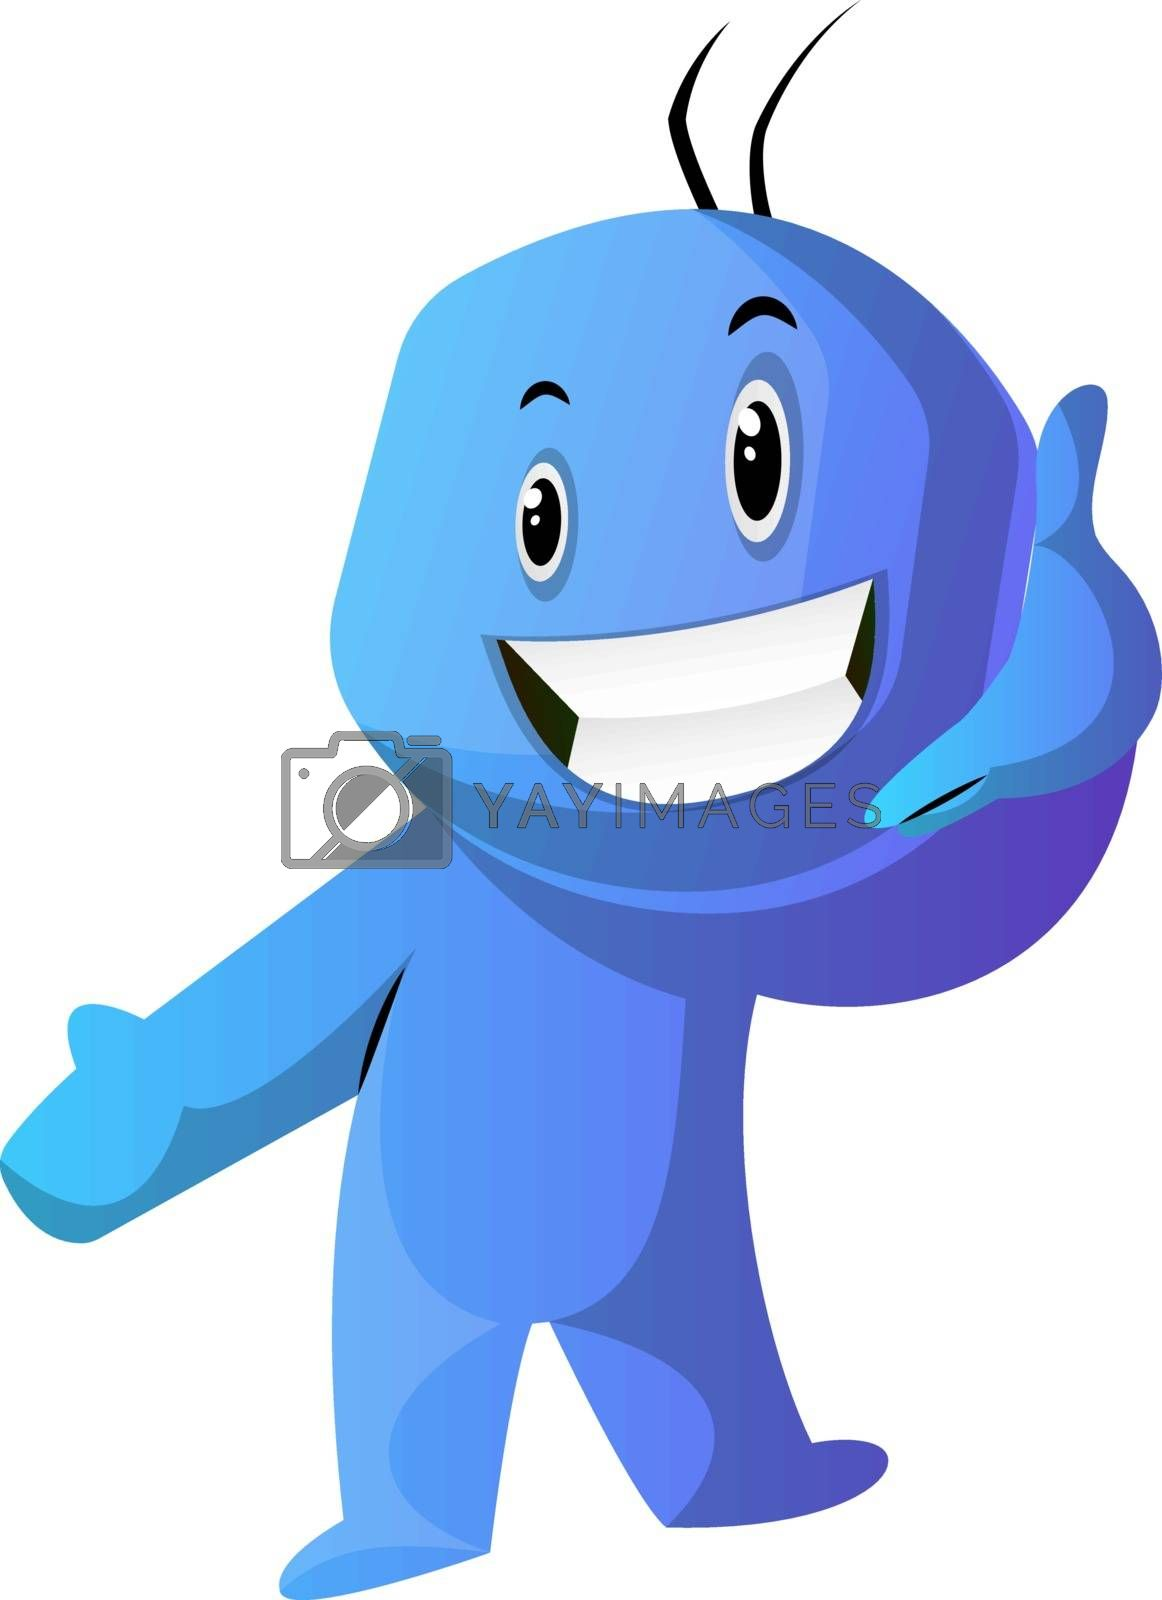 Royalty free image of Blue cartoon caracter showing a phone sign illustration vector o by Morphart